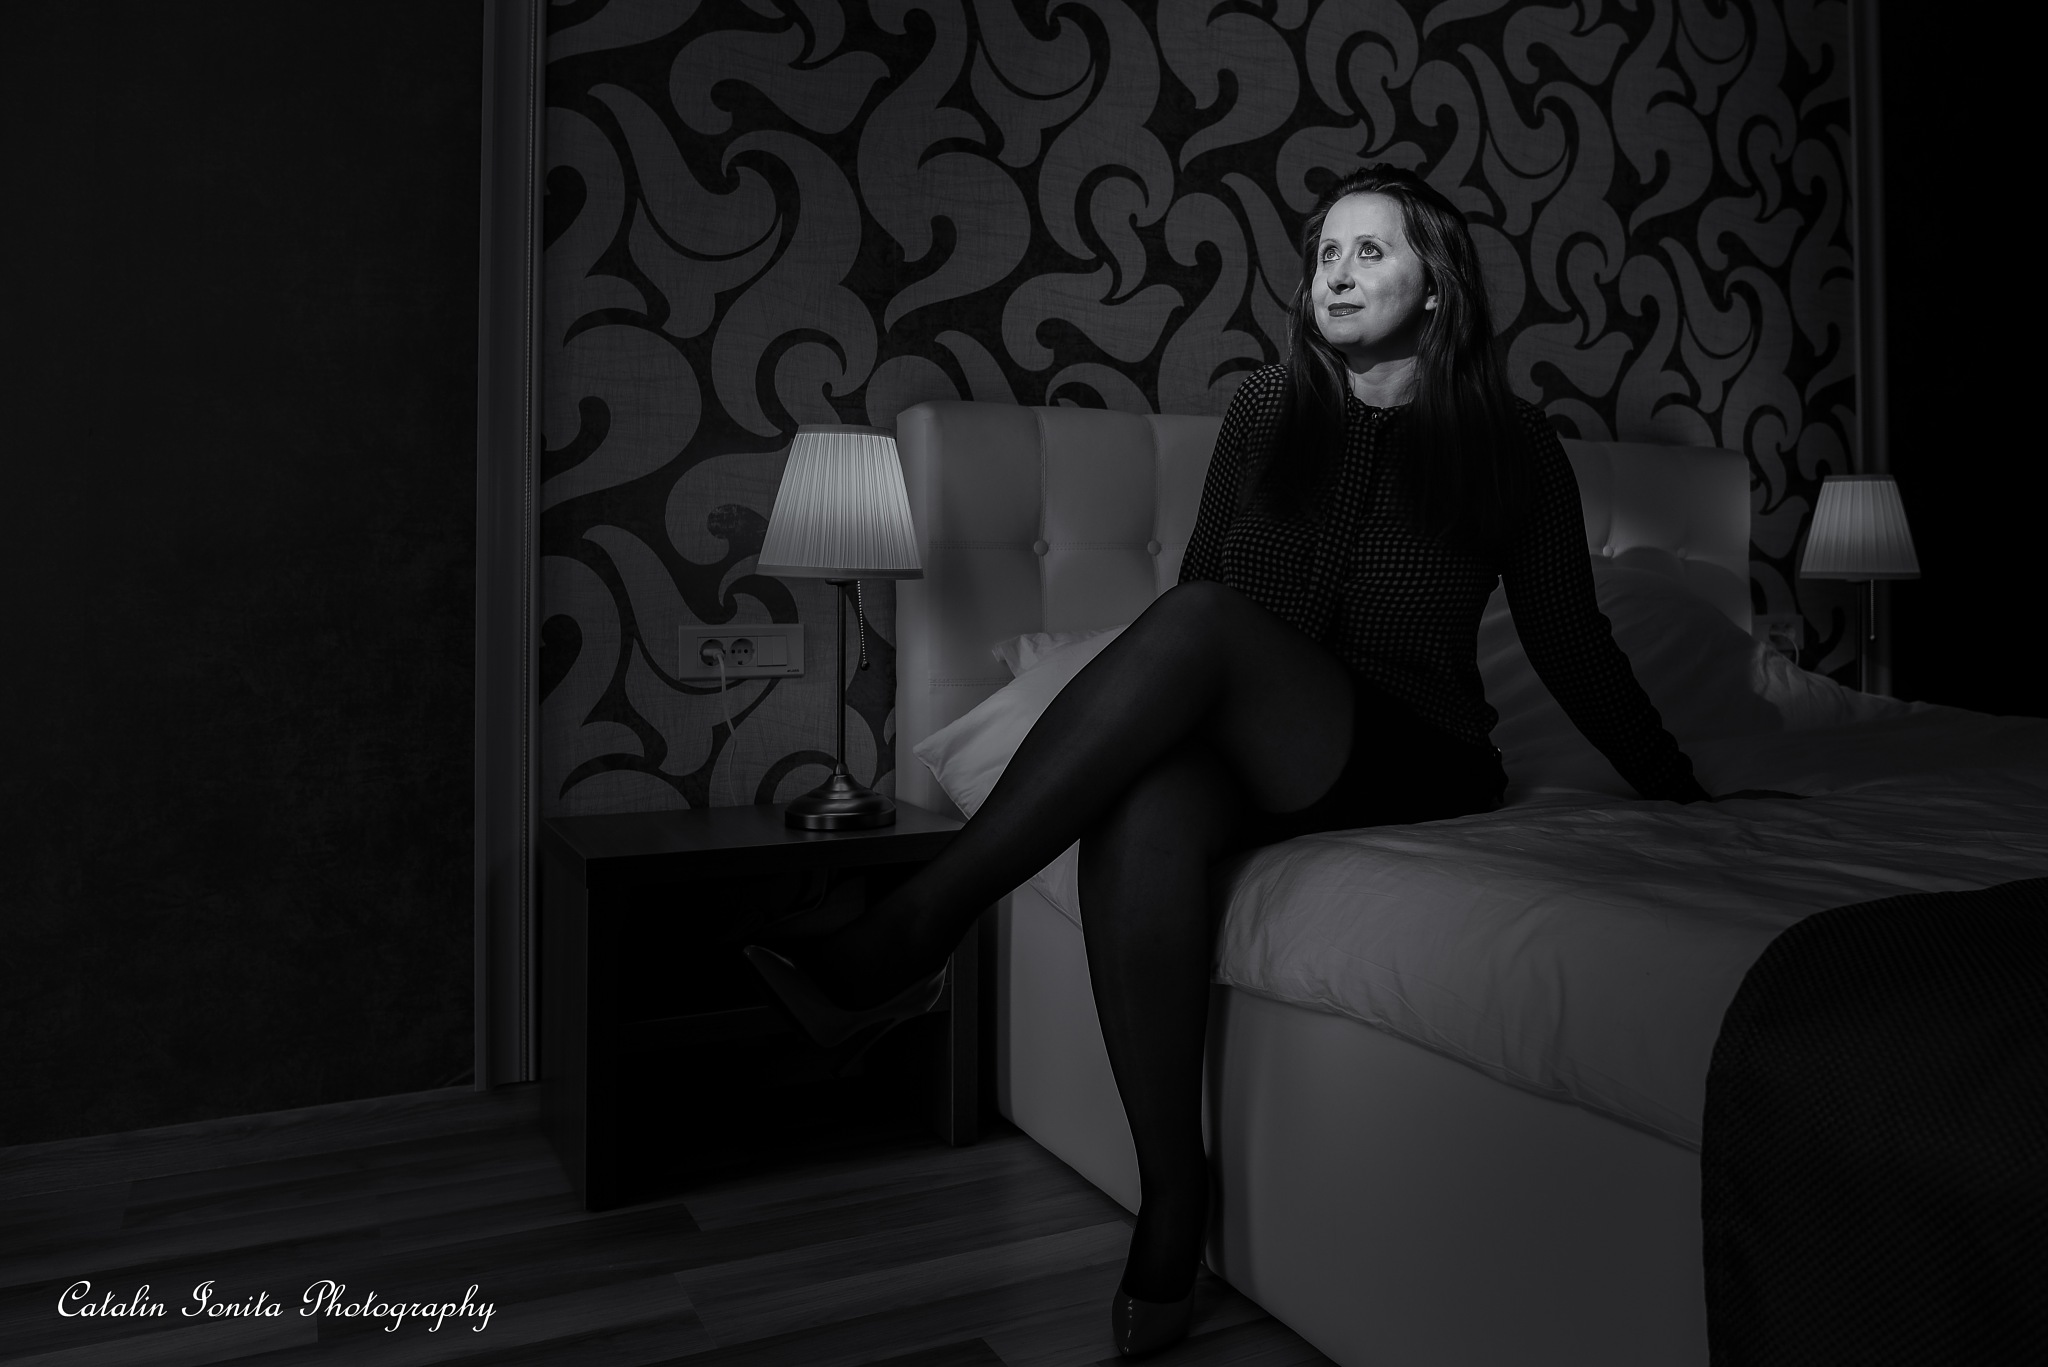 Black cat by CatalinIonitaPhotographer